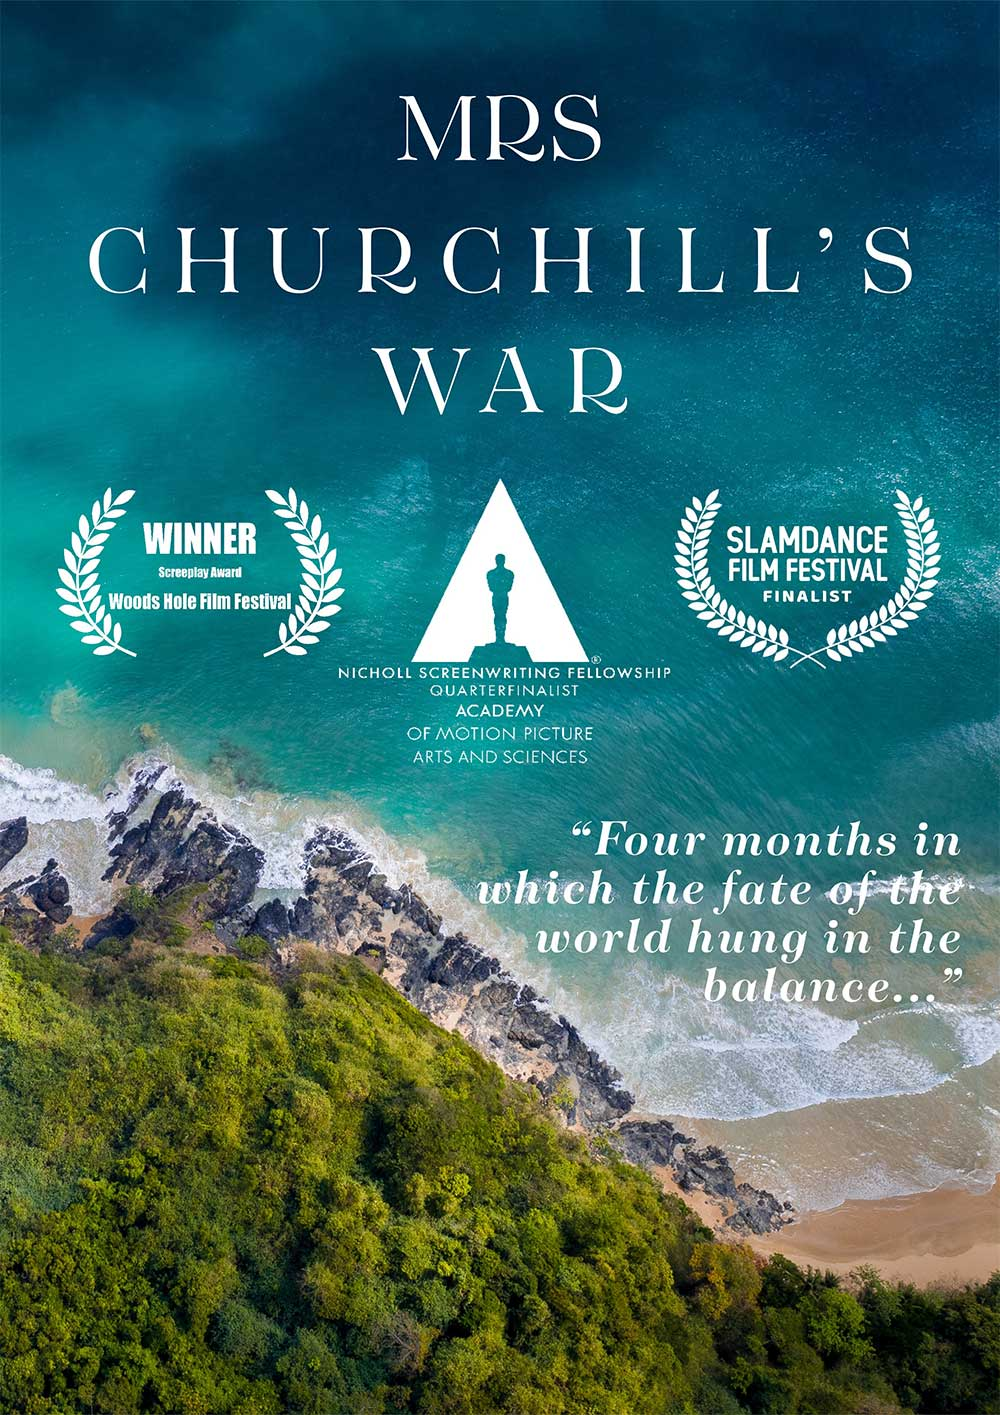 chuchill-film-finance-for-the-film-movie-industry